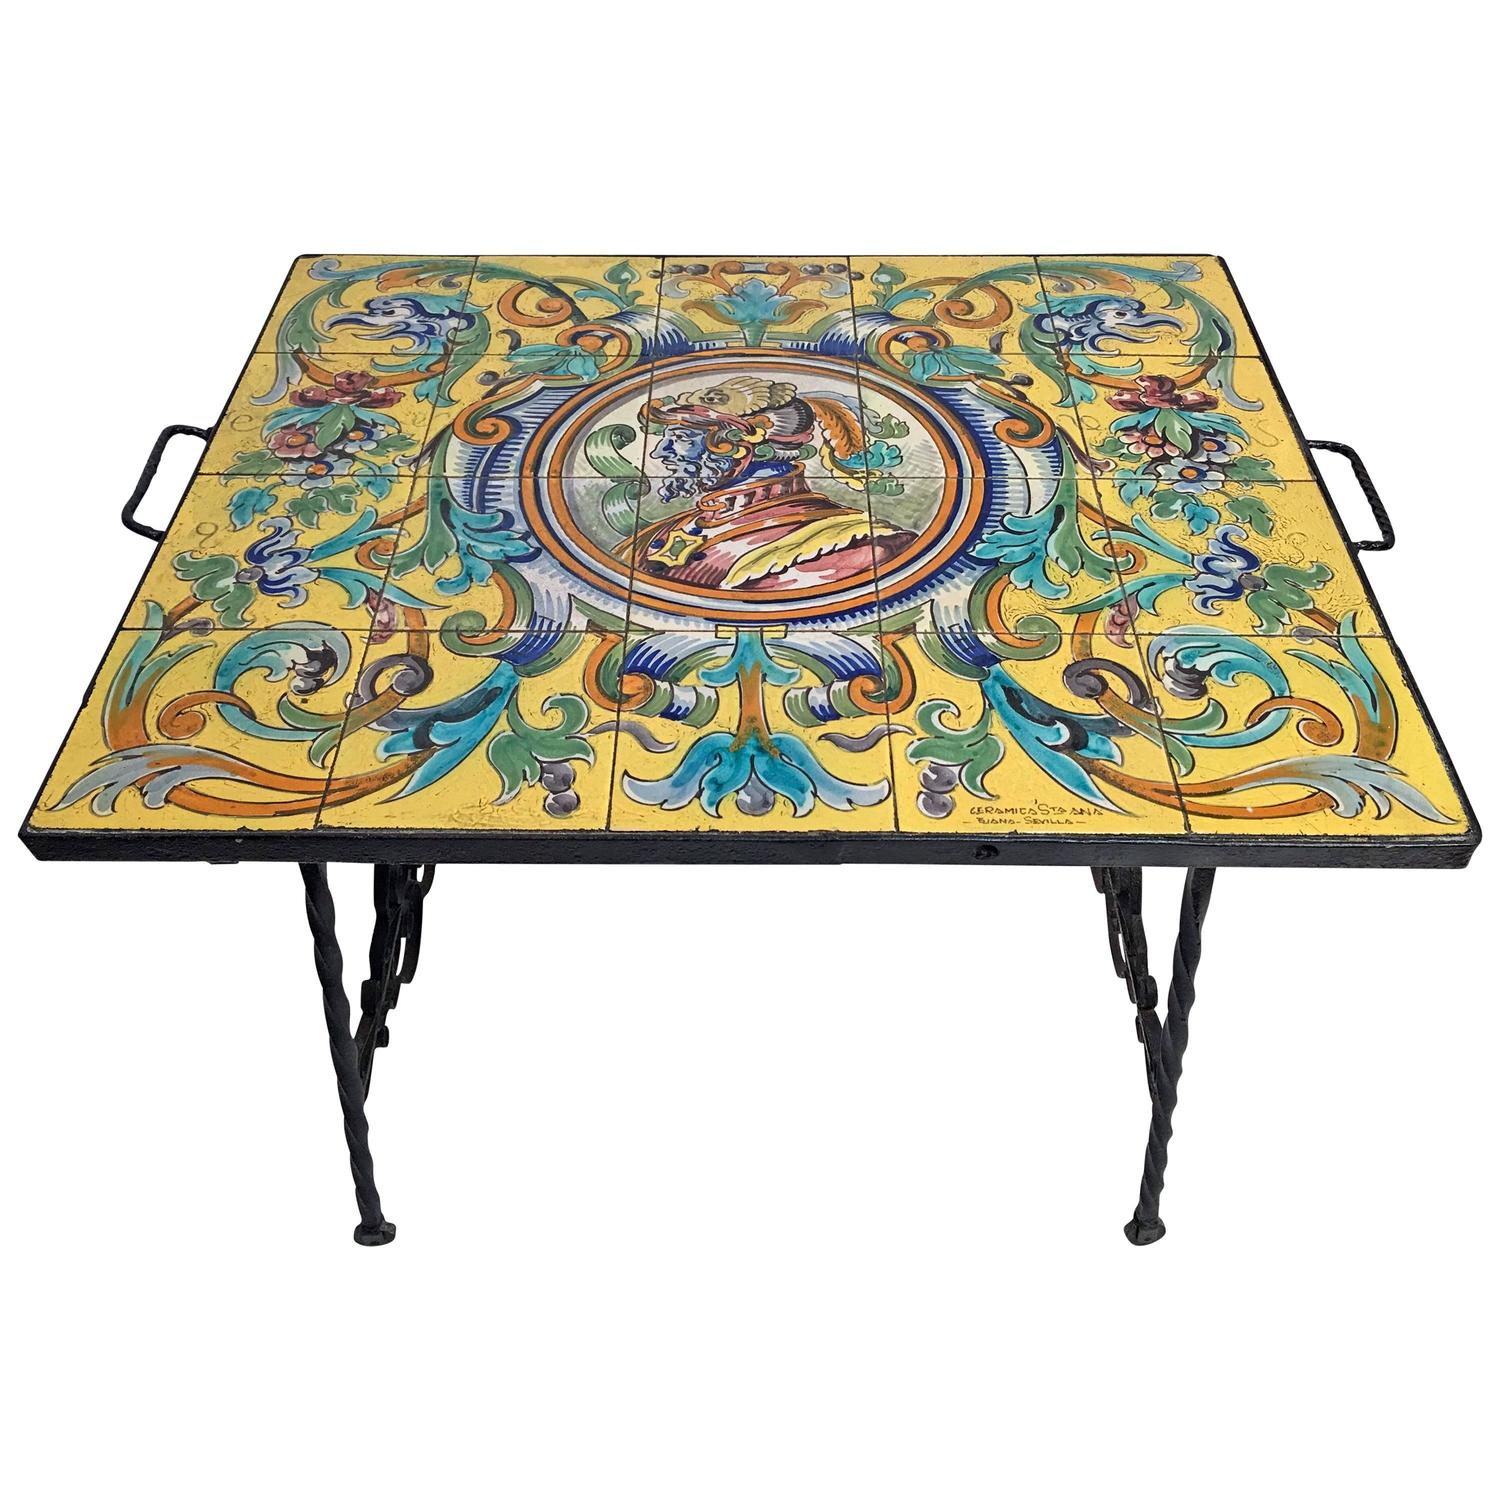 Hand Wrought Iron Table with Spanish Ceramic Tile Top For Sale at